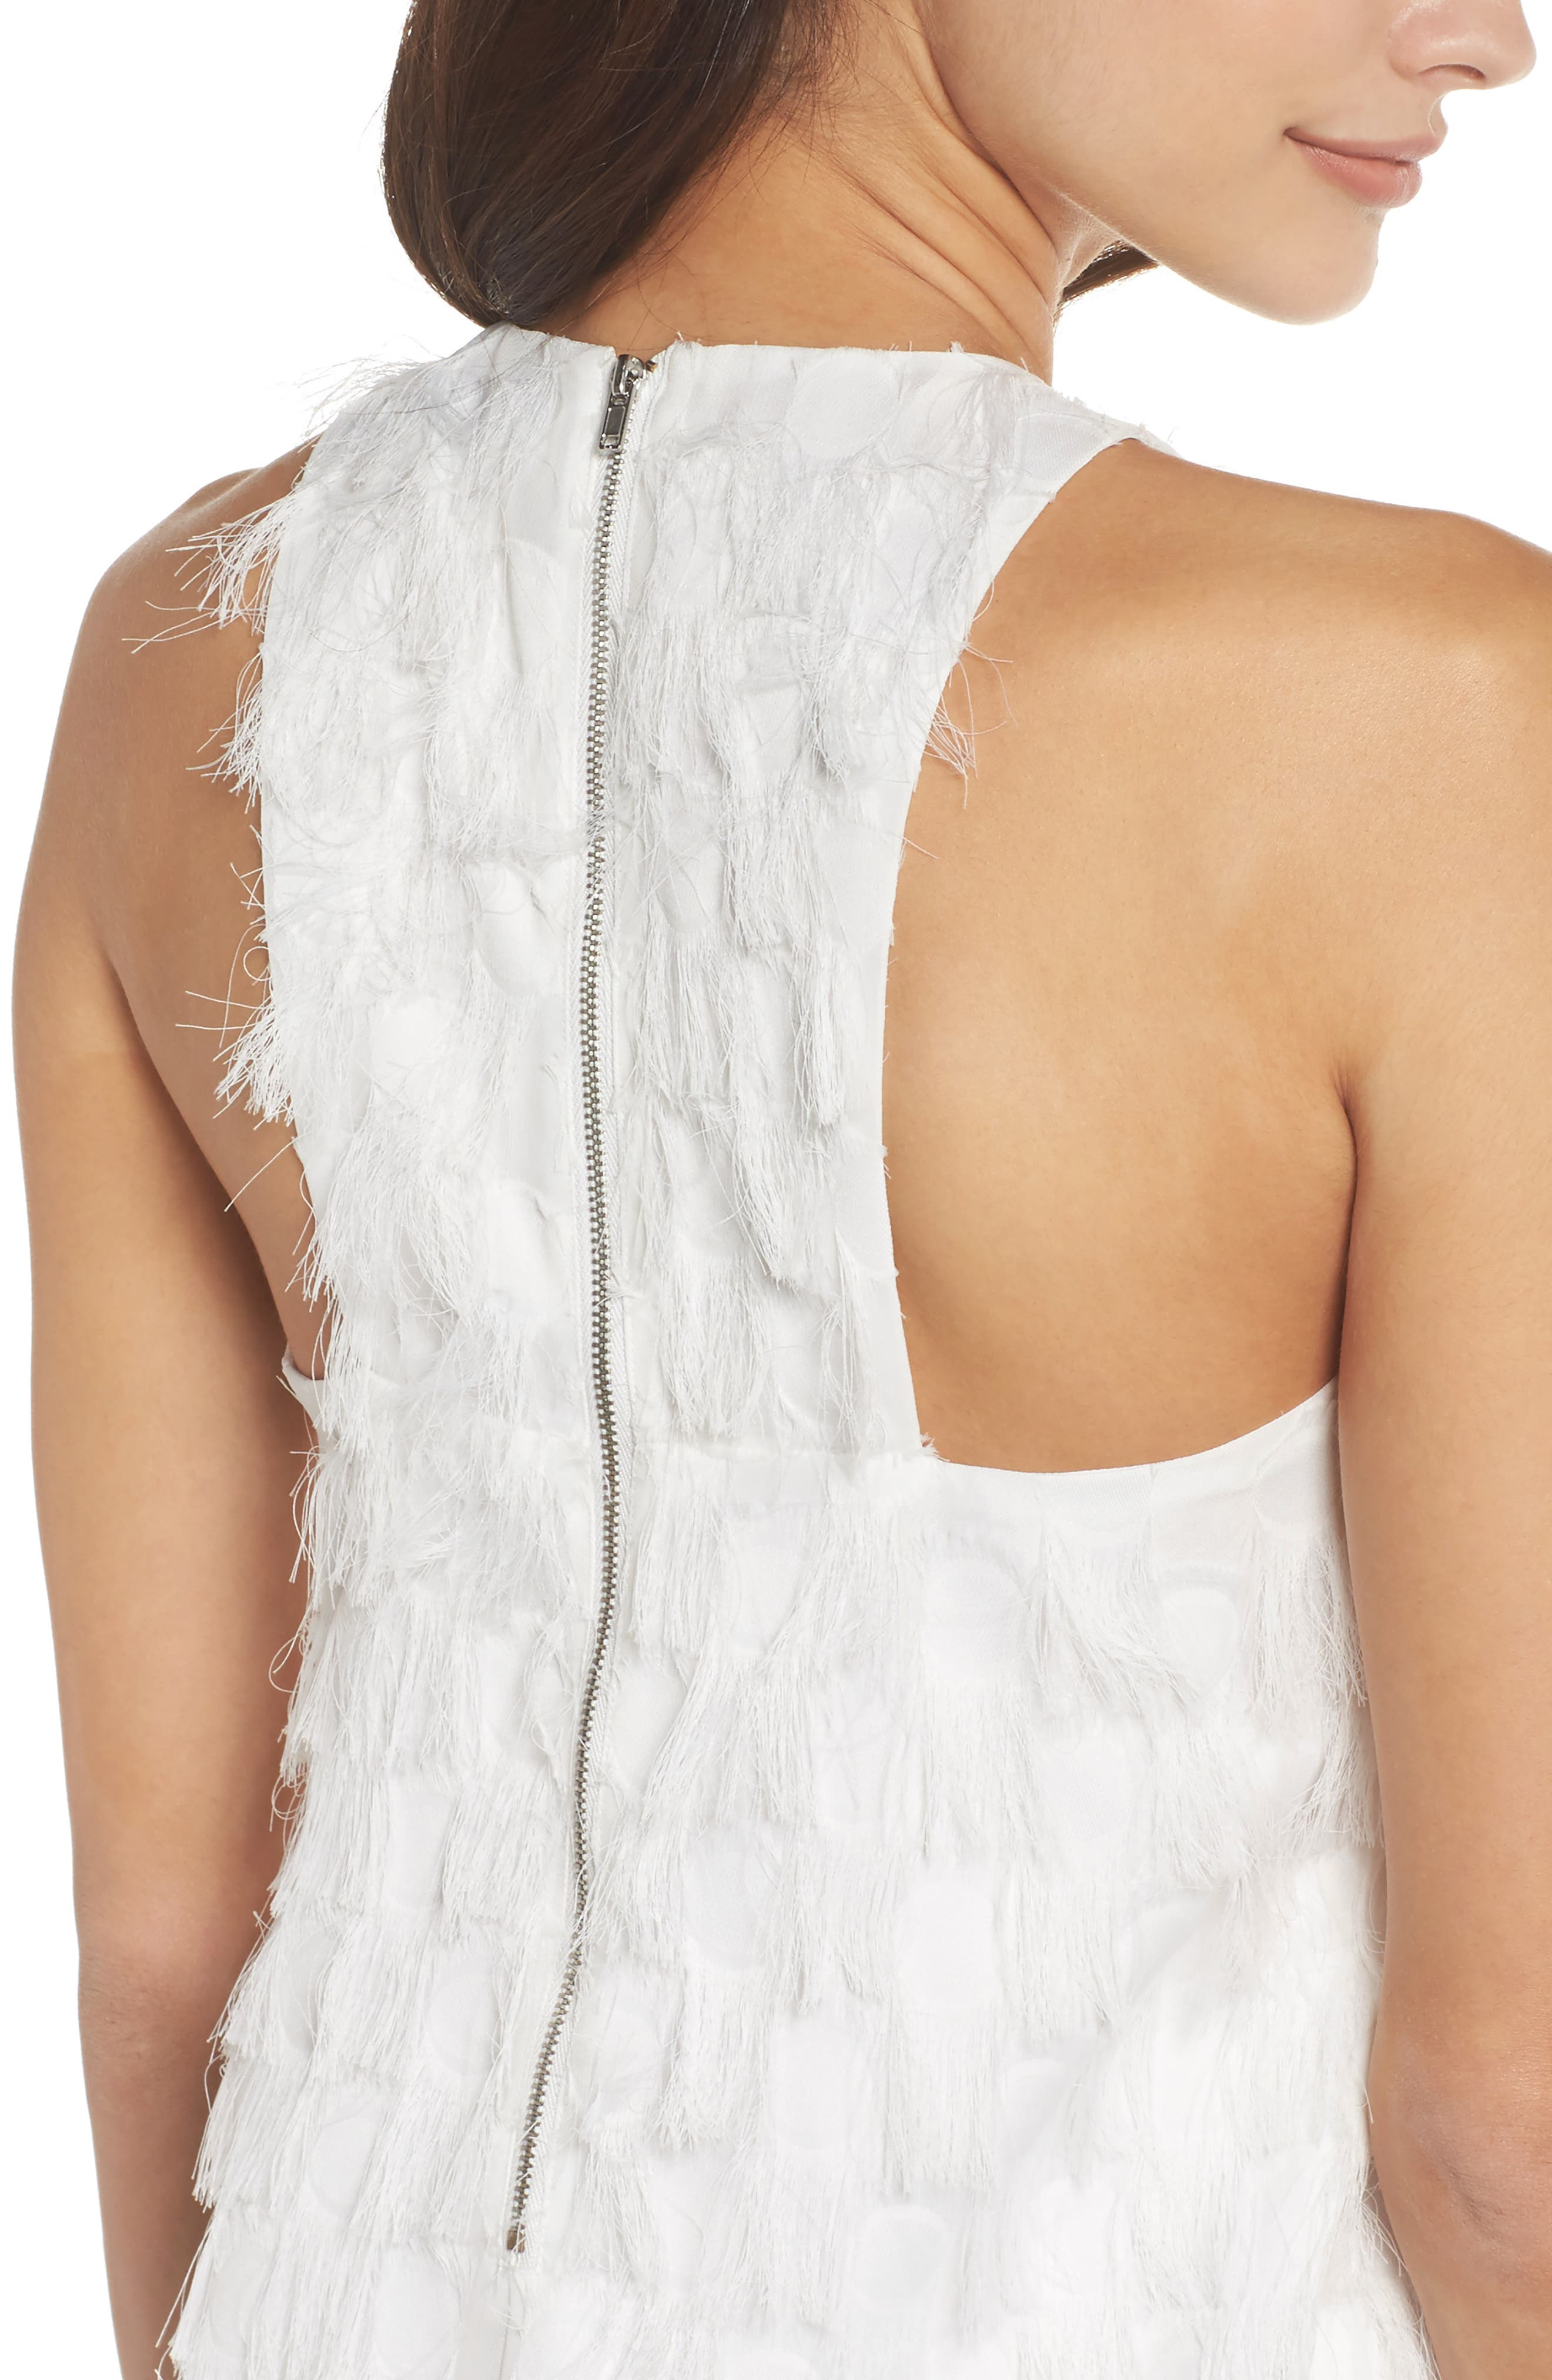 Shake Your Tail Feathers Minidress,                             Alternate thumbnail 5, color,                             White Fringe